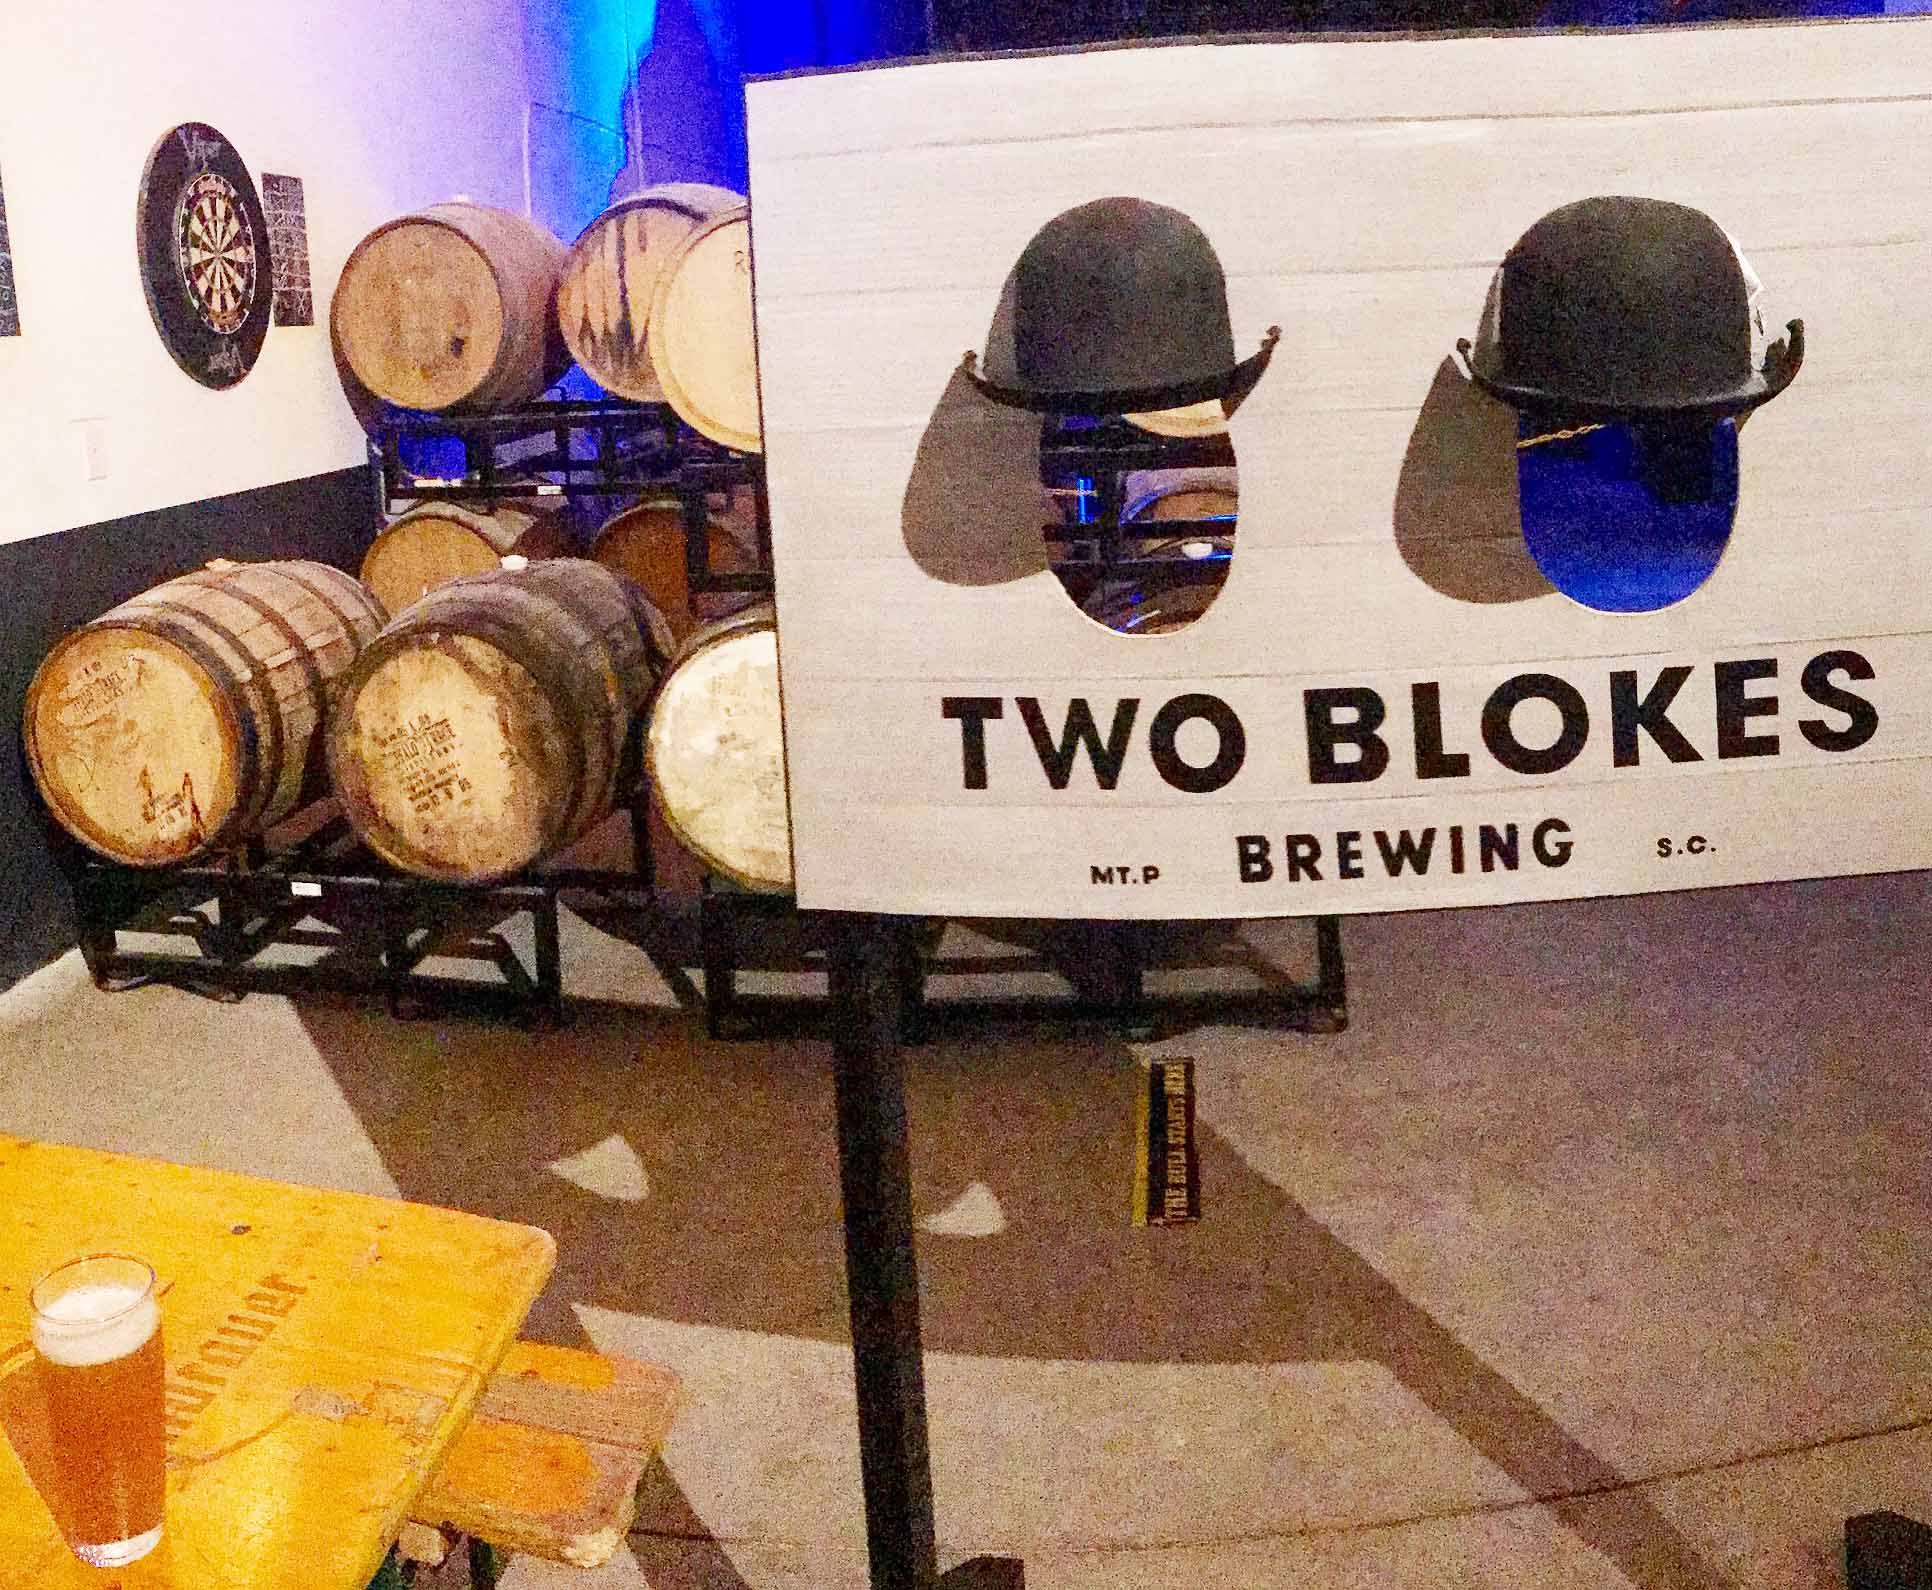 370. Two Blokes Brewing Co, Mt. Pleasant SC, 2018